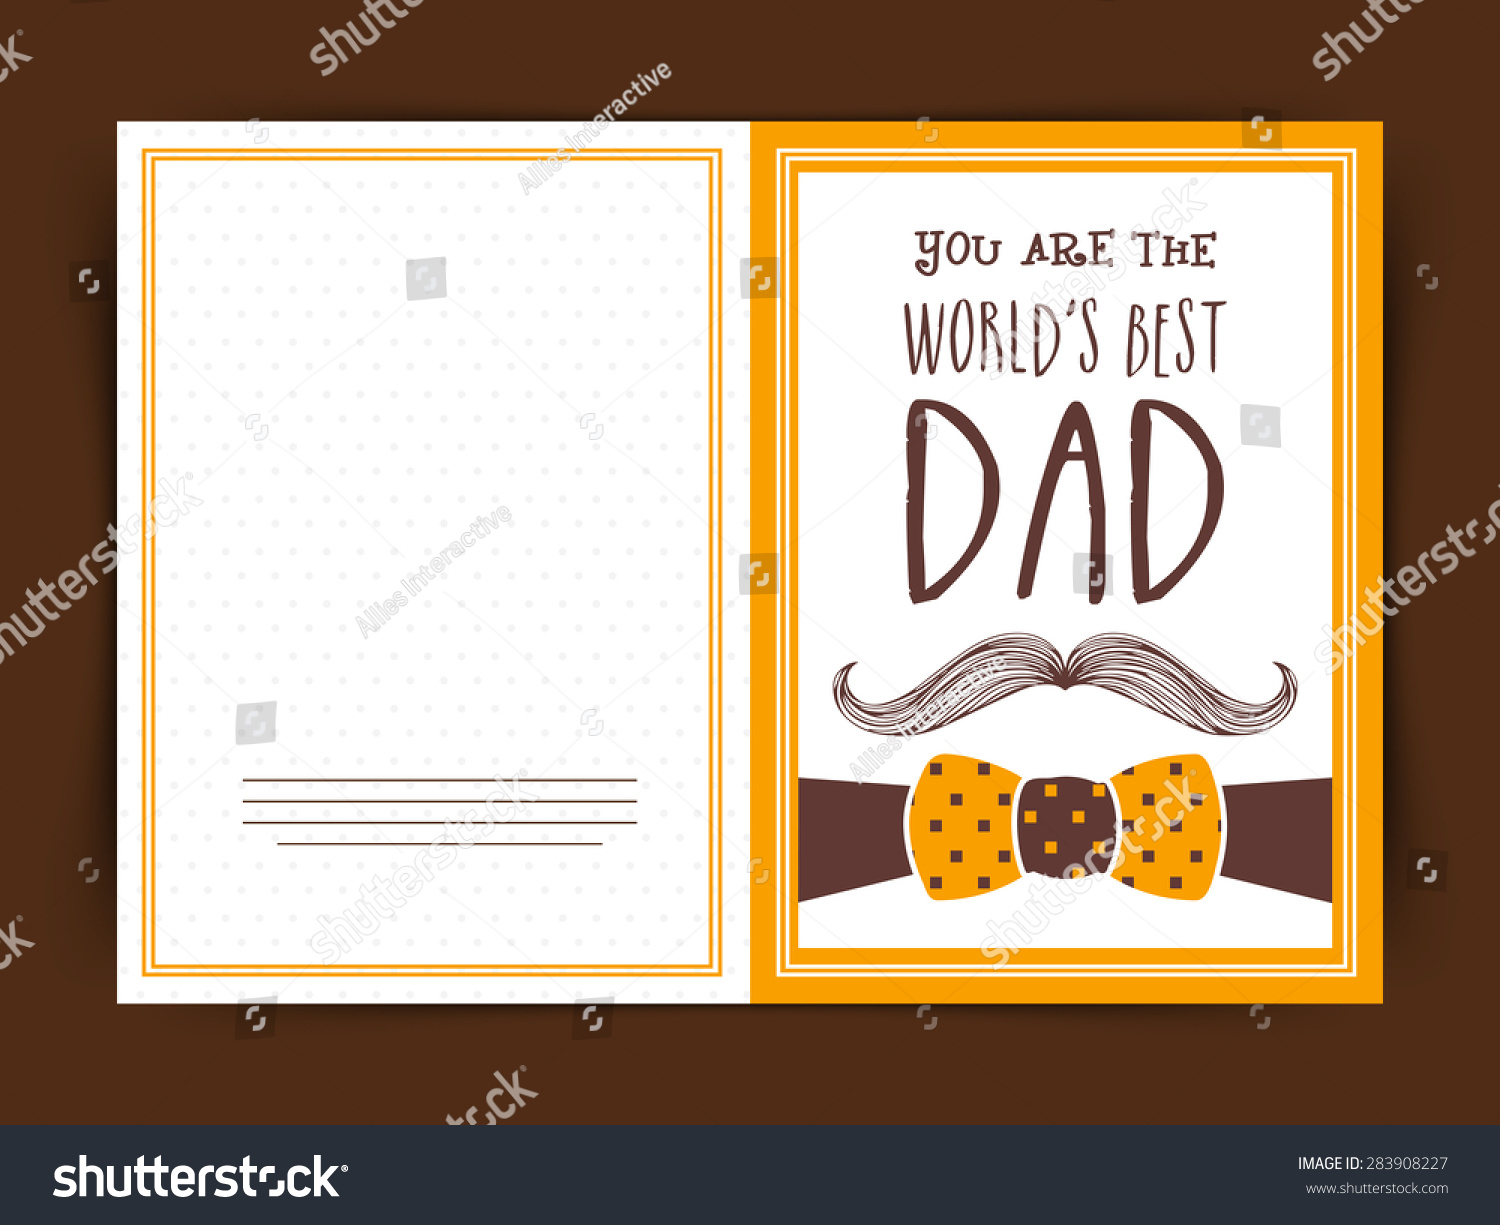 Worlds Best Dad Greeting Card Design Stock Vector 283908227